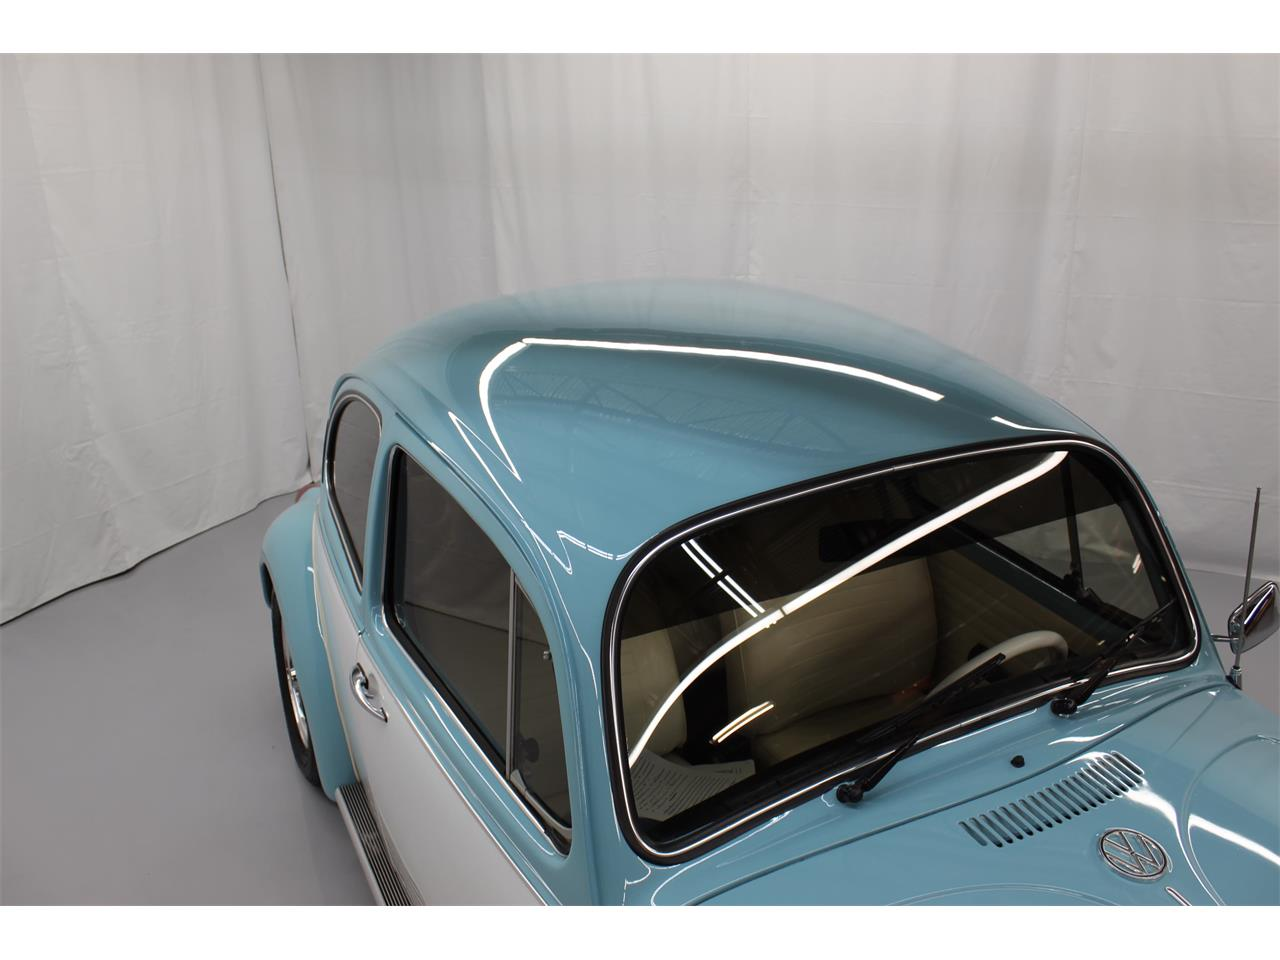 1974 Volkswagen Beetle for sale in Christiansburg, VA – photo 62